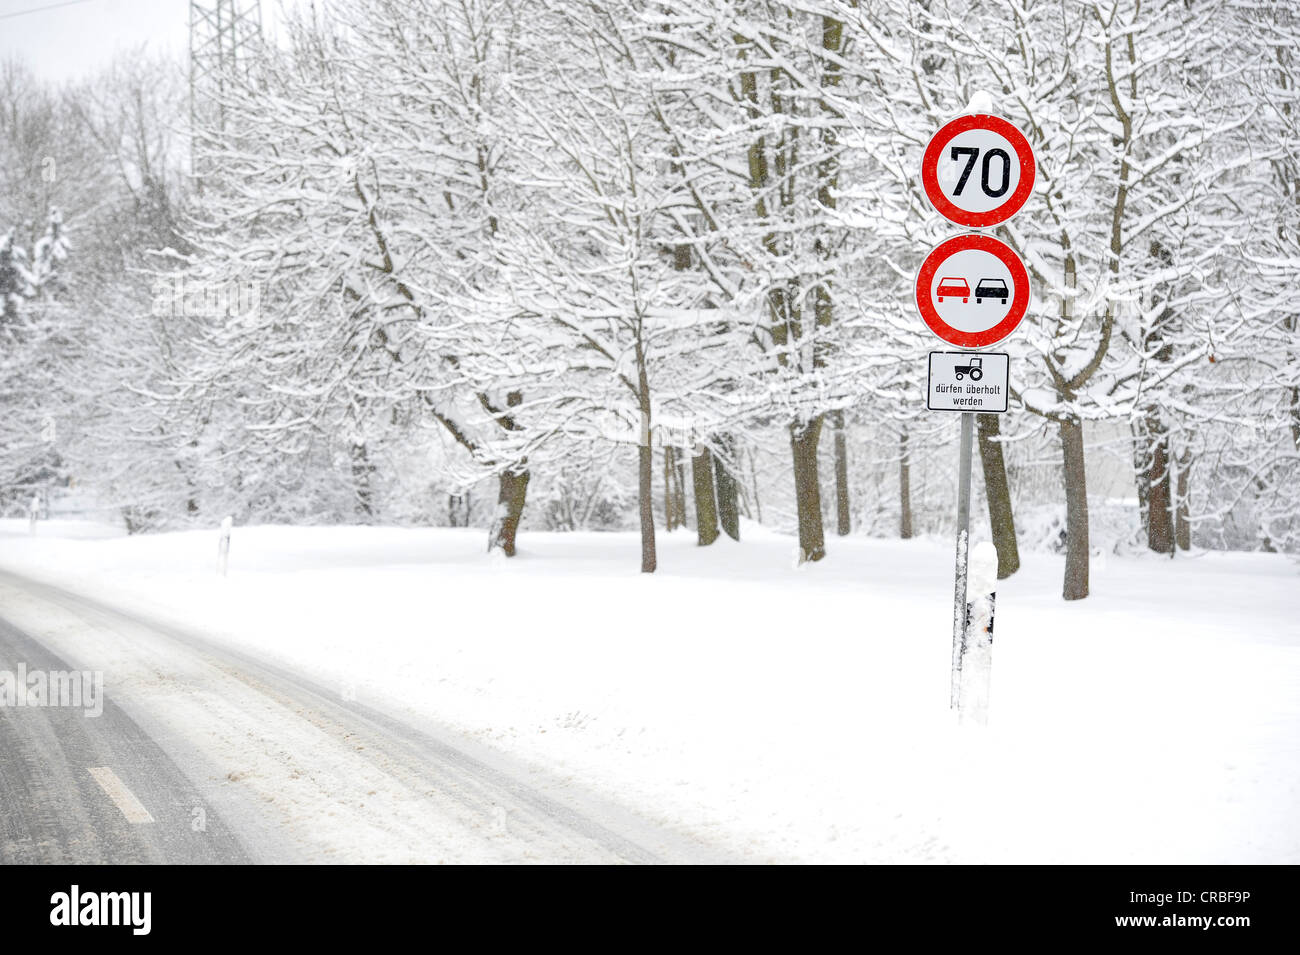 Snow-covered country road in winter, mandatory-sign, prohibition sign - Stock Image